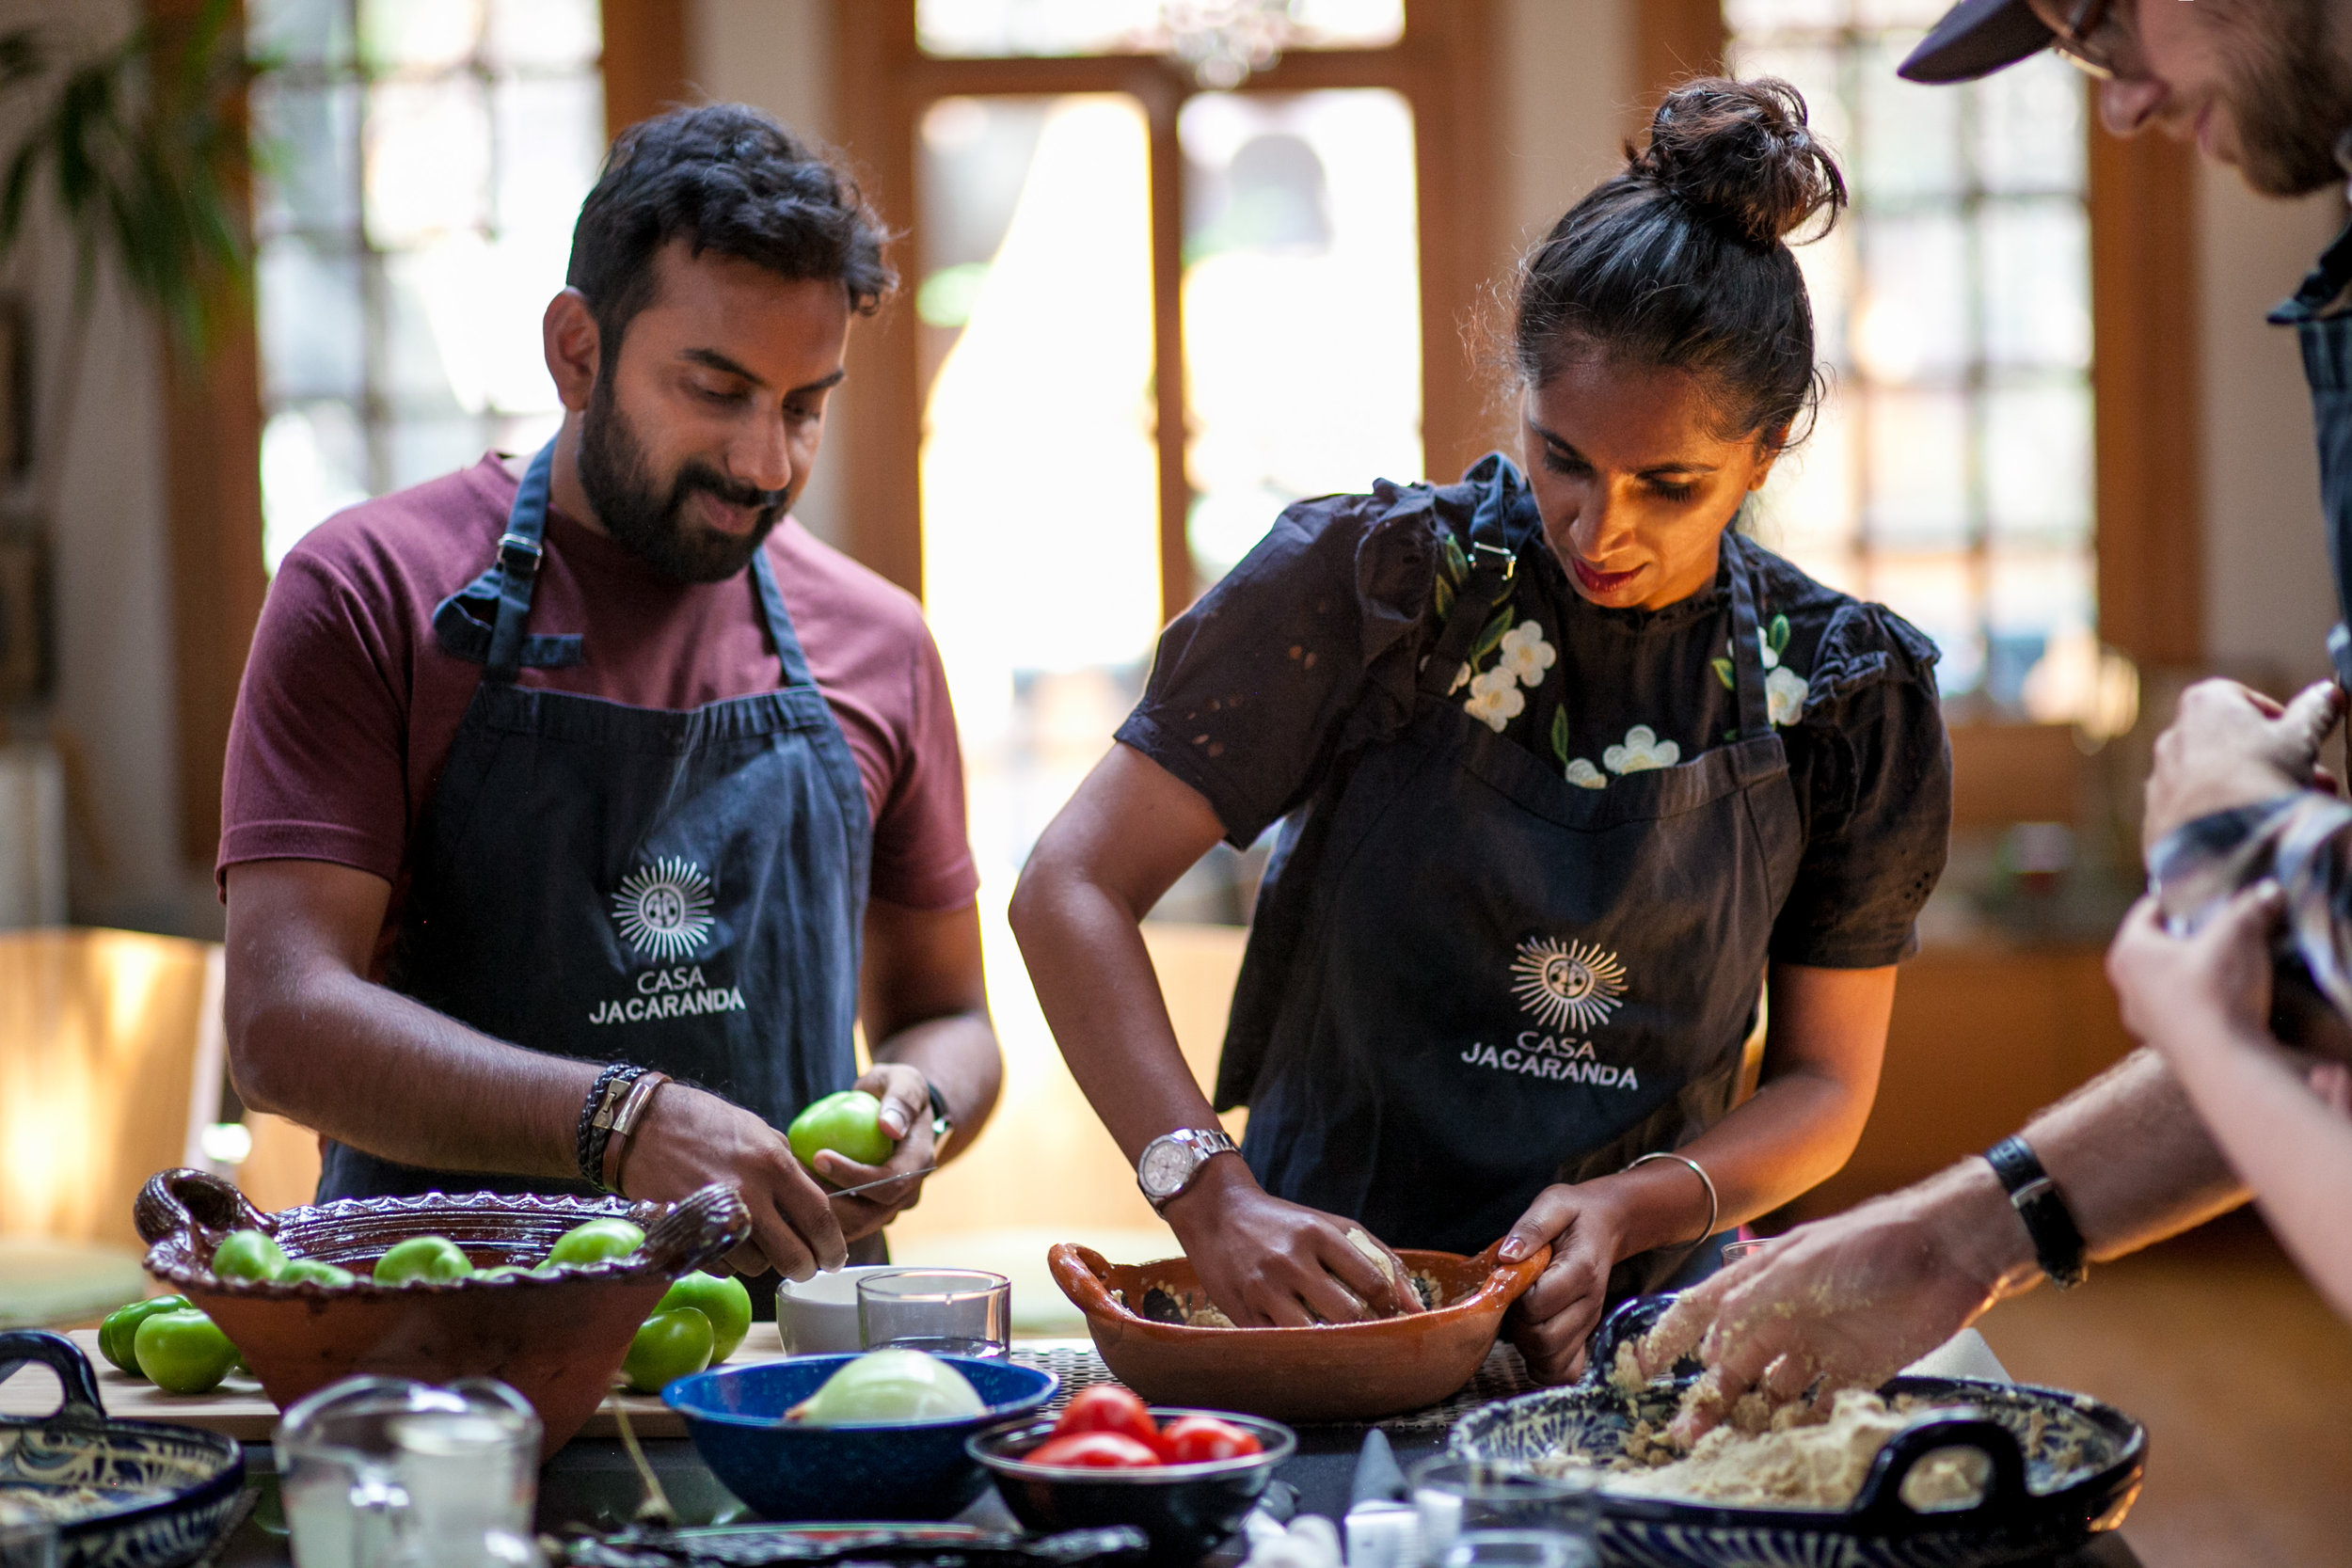 Copy of couple making Mexican food in a cooking class